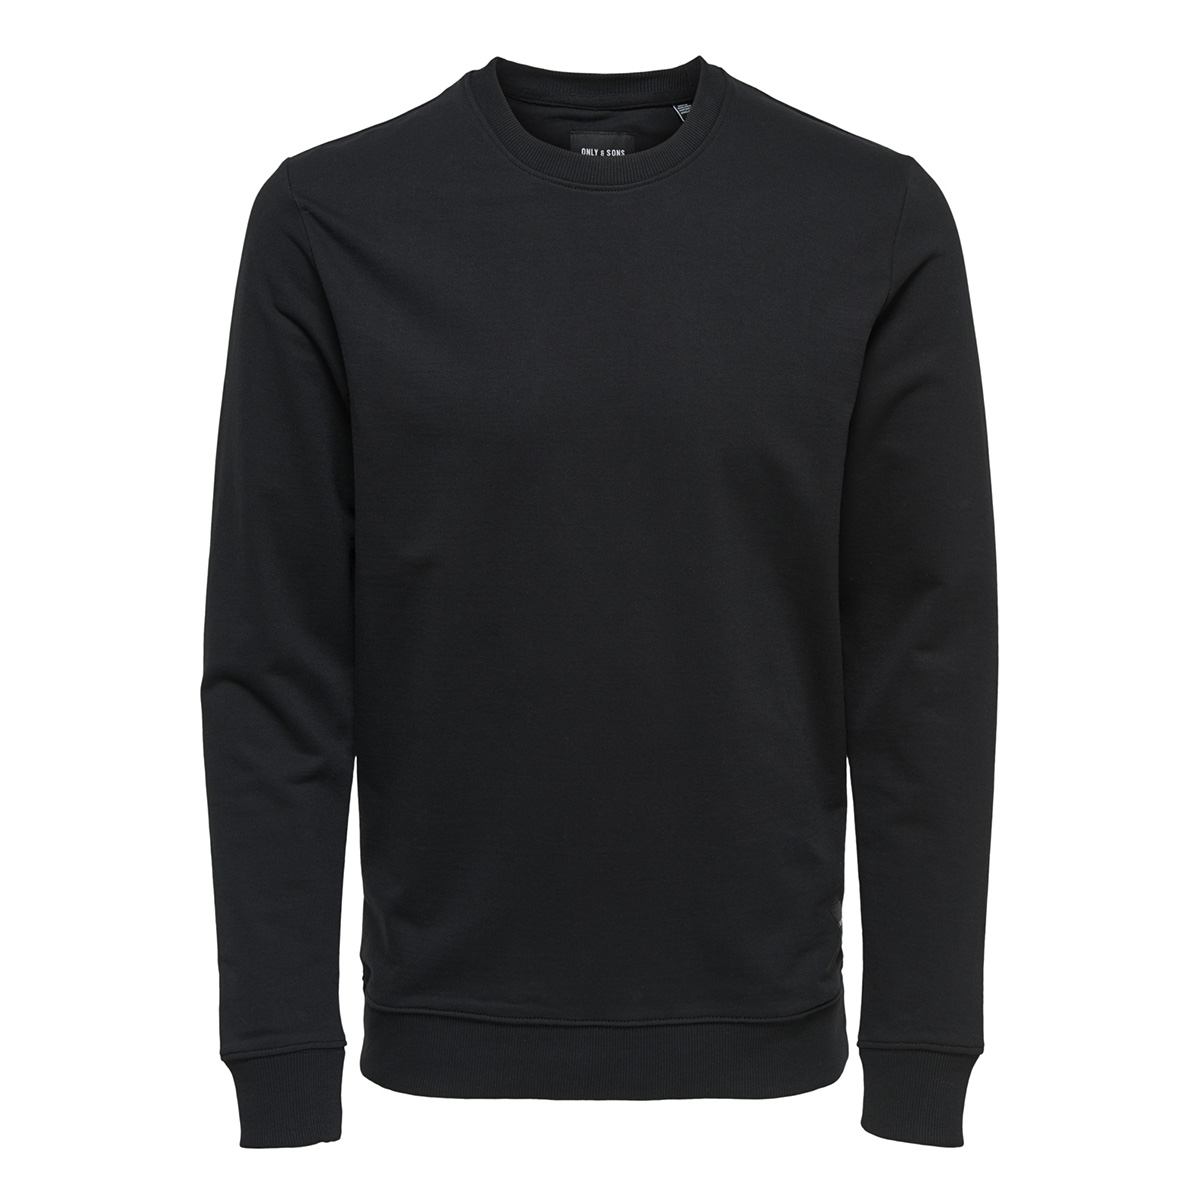 onsbasic sweat crew neck unbrushed noos 22012005 only & sons sweater black